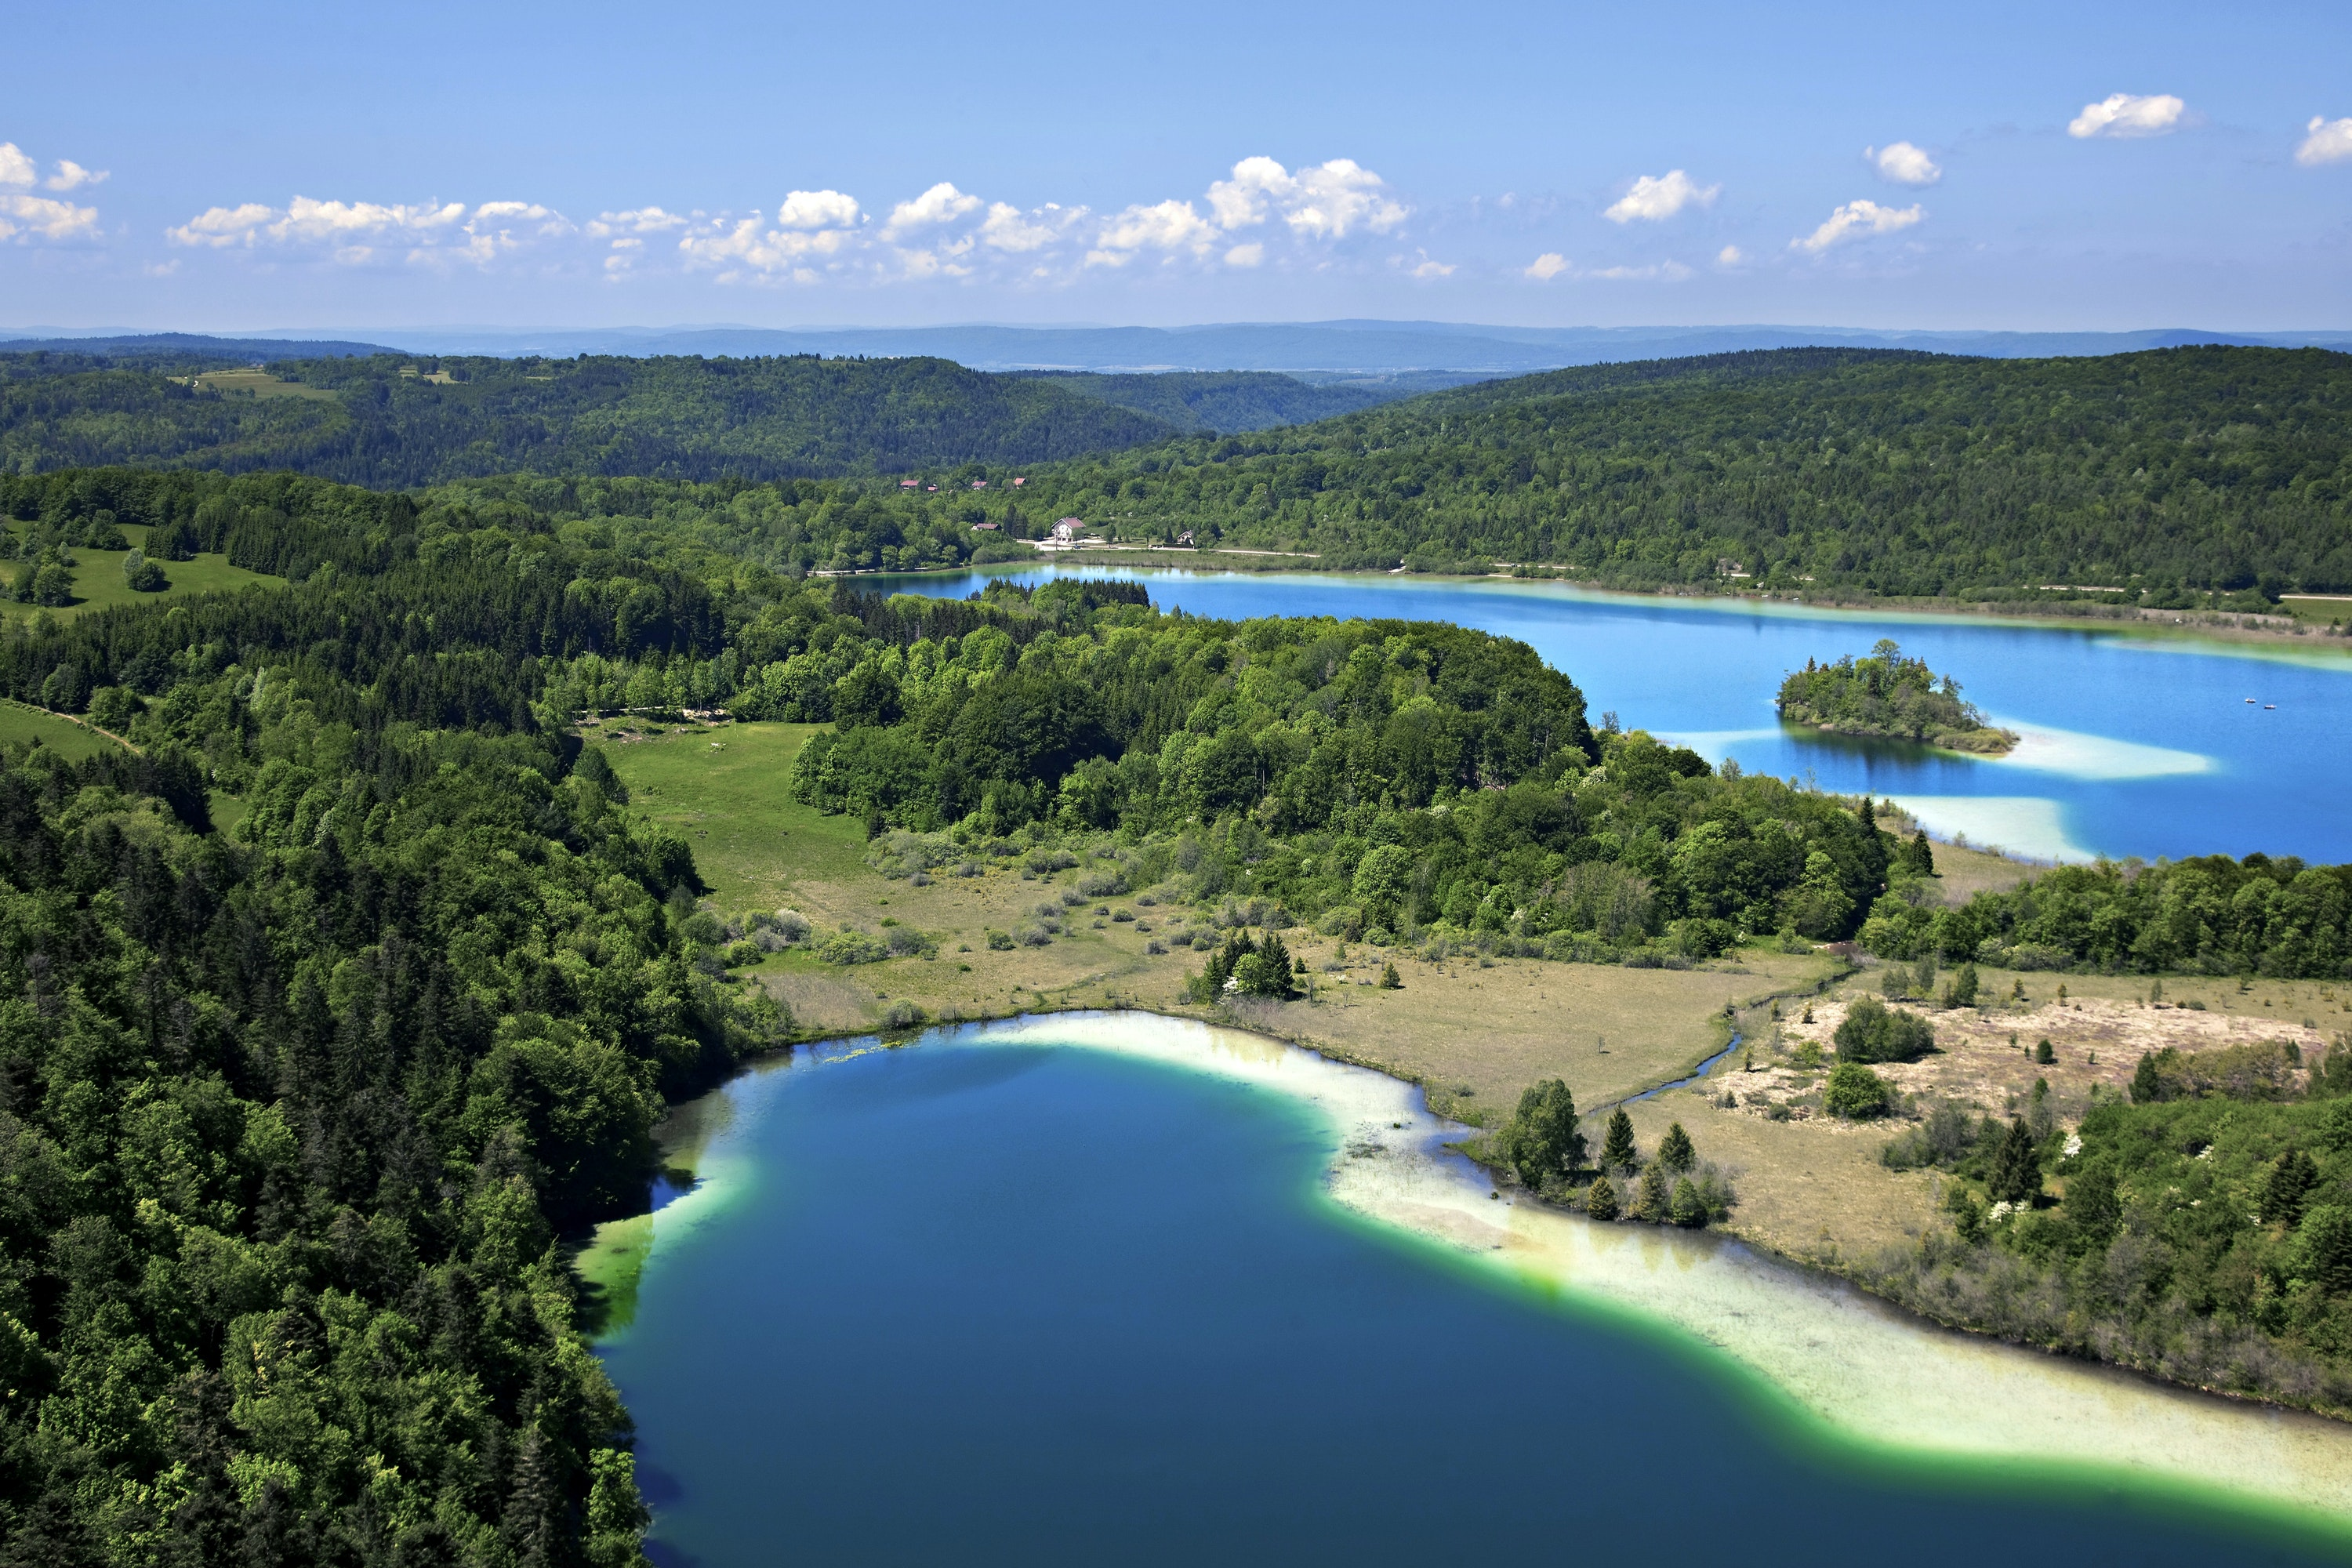 The Jura is dotted with scenic lakes like the Lacs de Maclu.